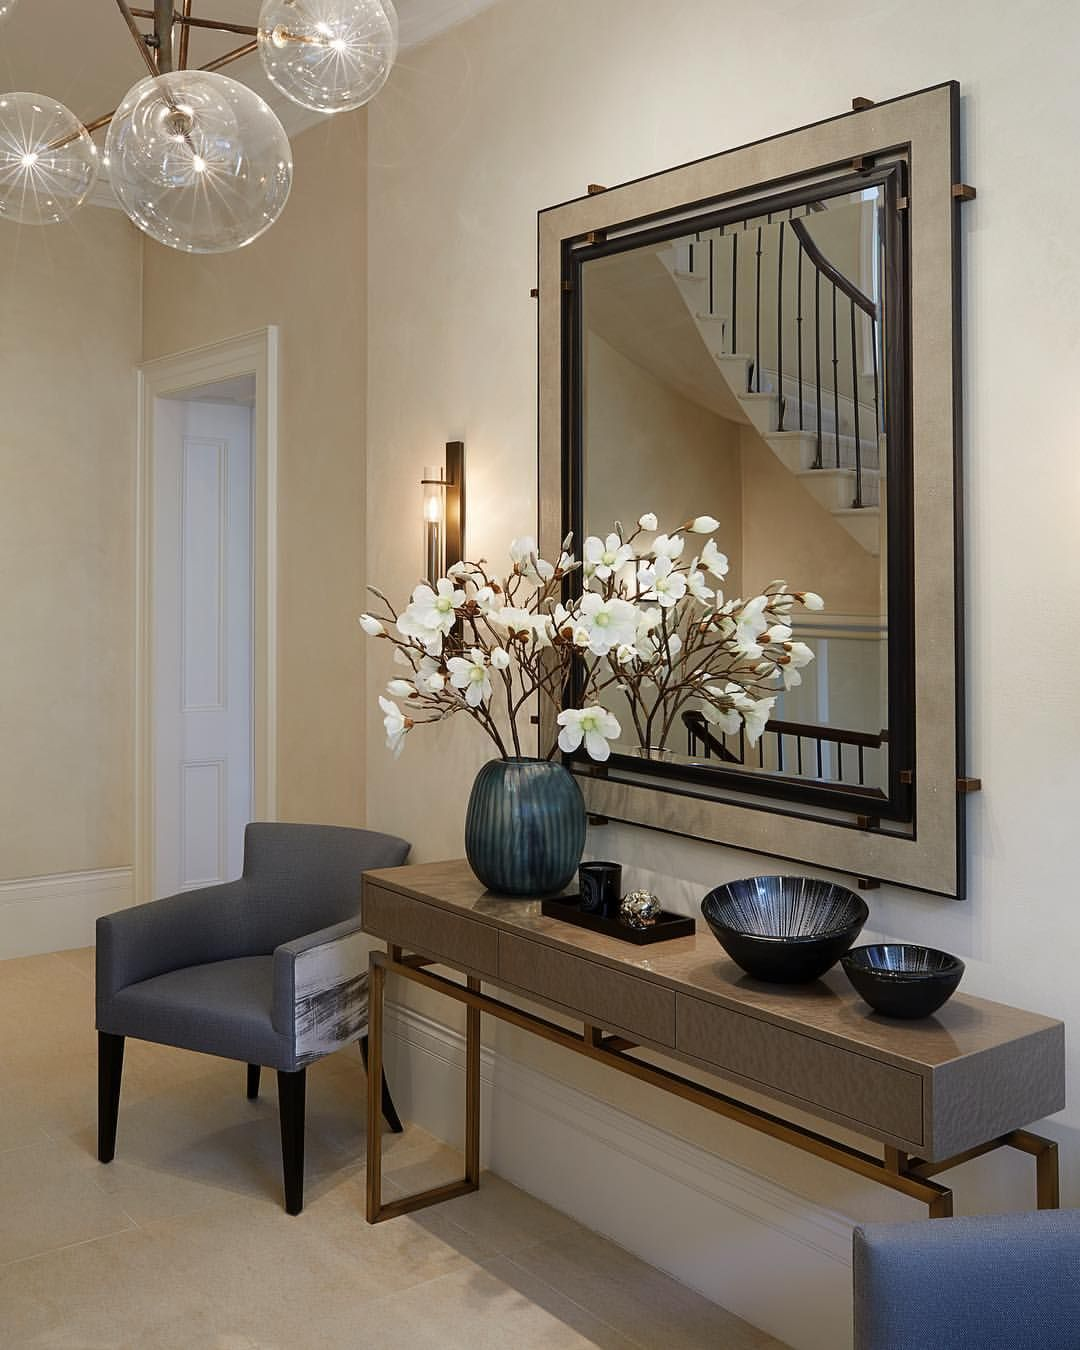 40 Bright Living Room Lighting Ideas: The Light And Bright Entrance Hall At Our Kensington